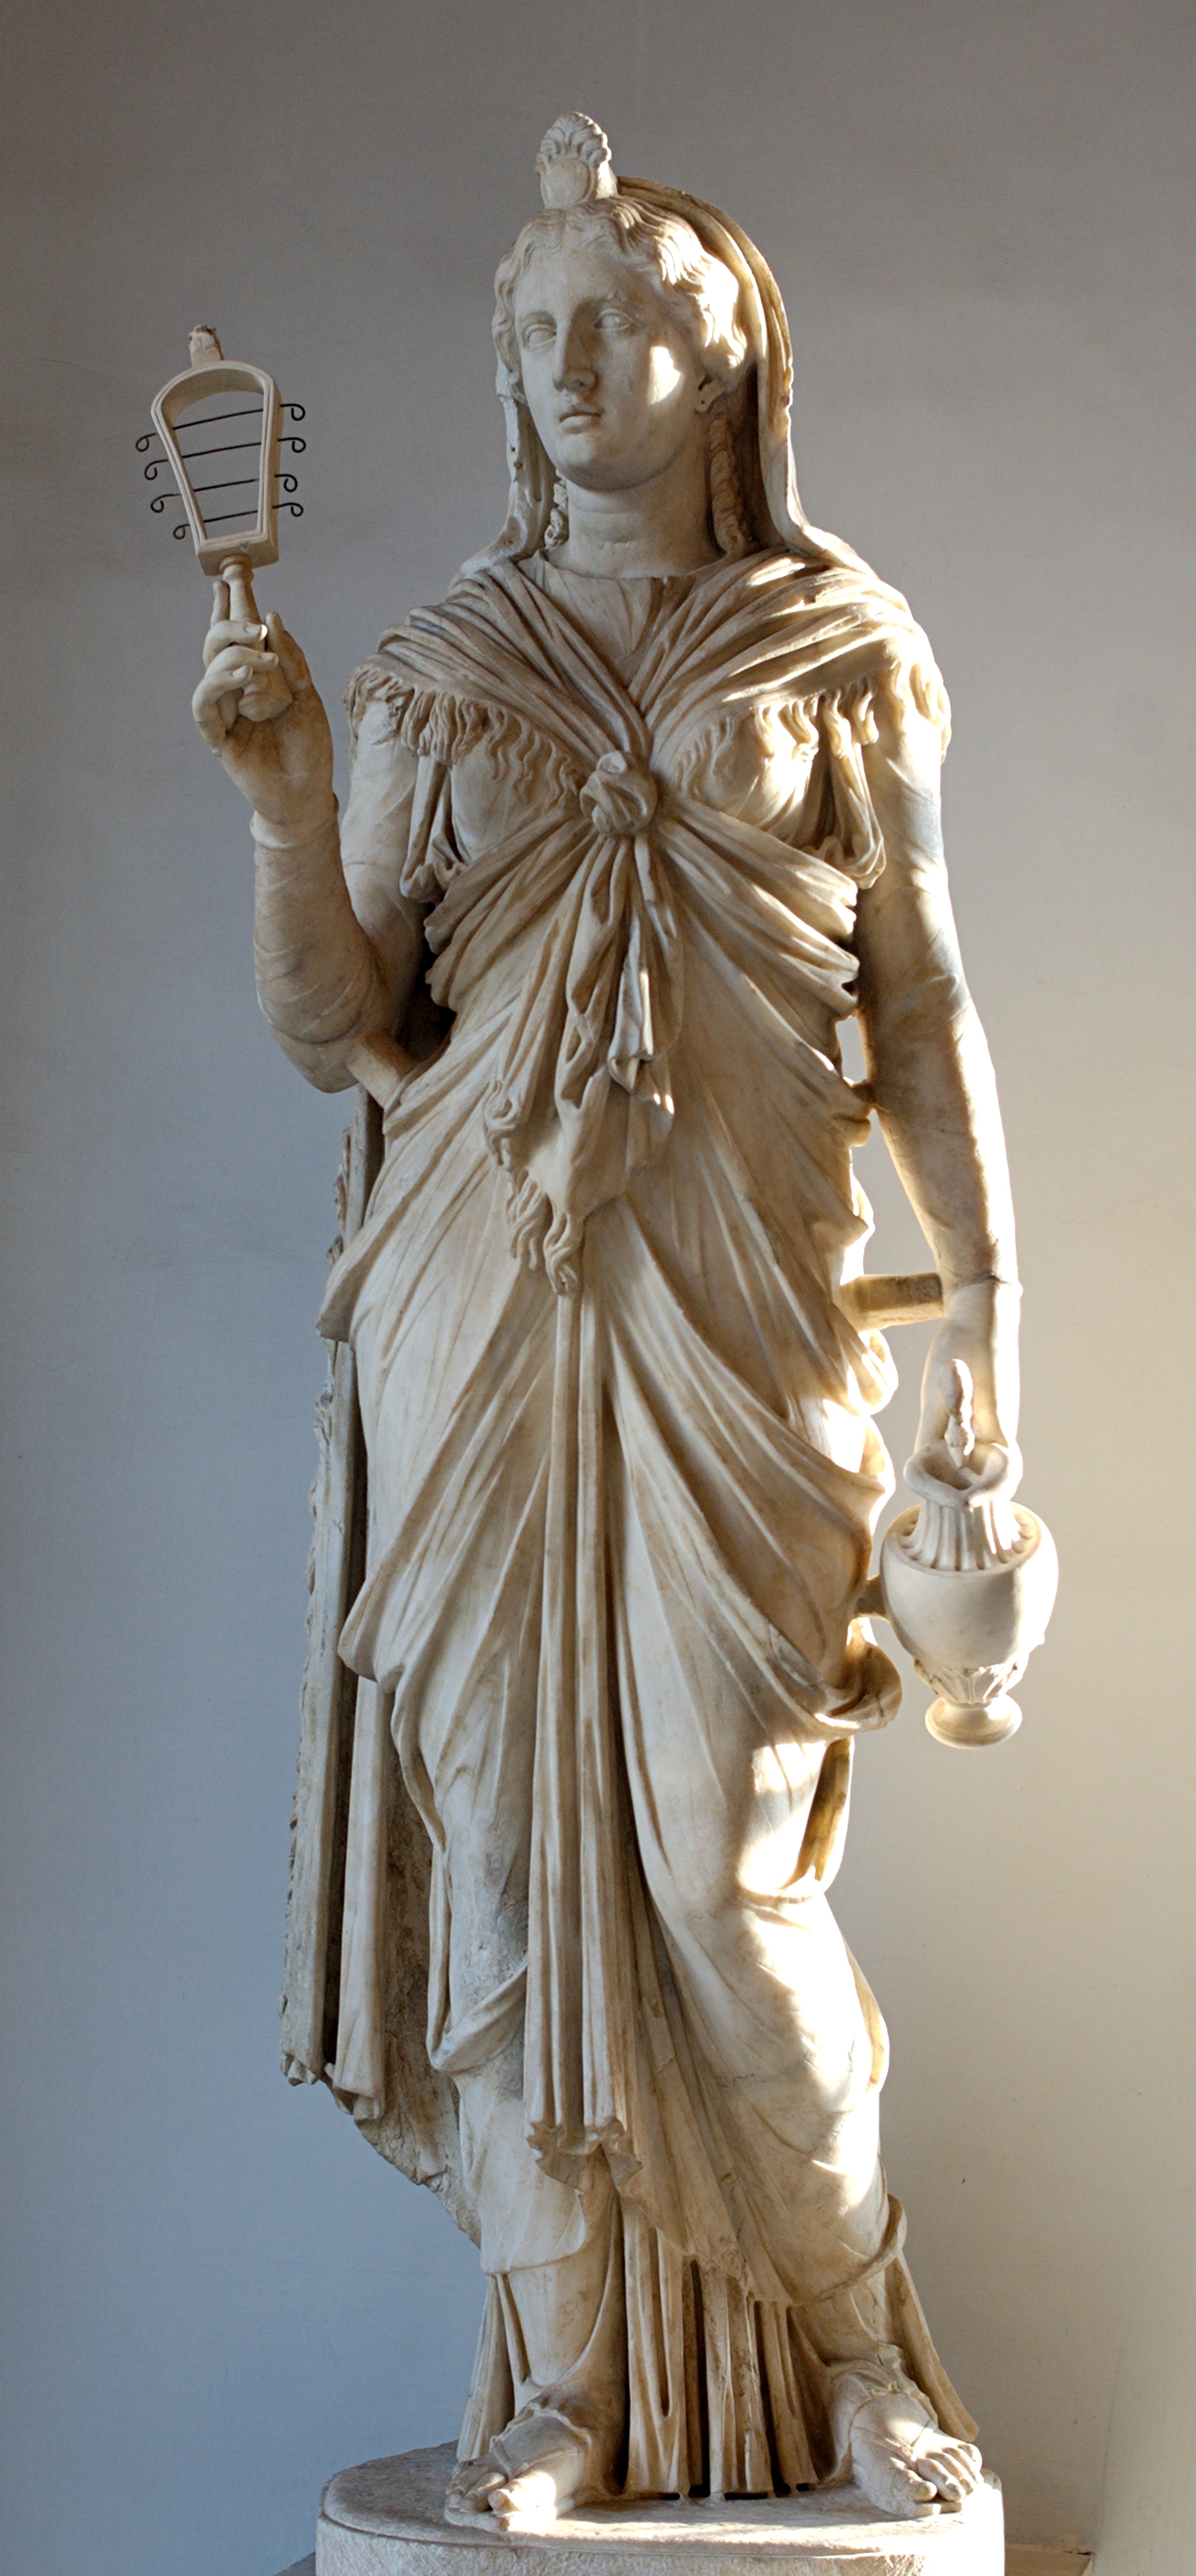 http://upload.wikimedia.org/wikipedia/commons/f/fe/Isis_Musei_Capitolini_MC744.jpg